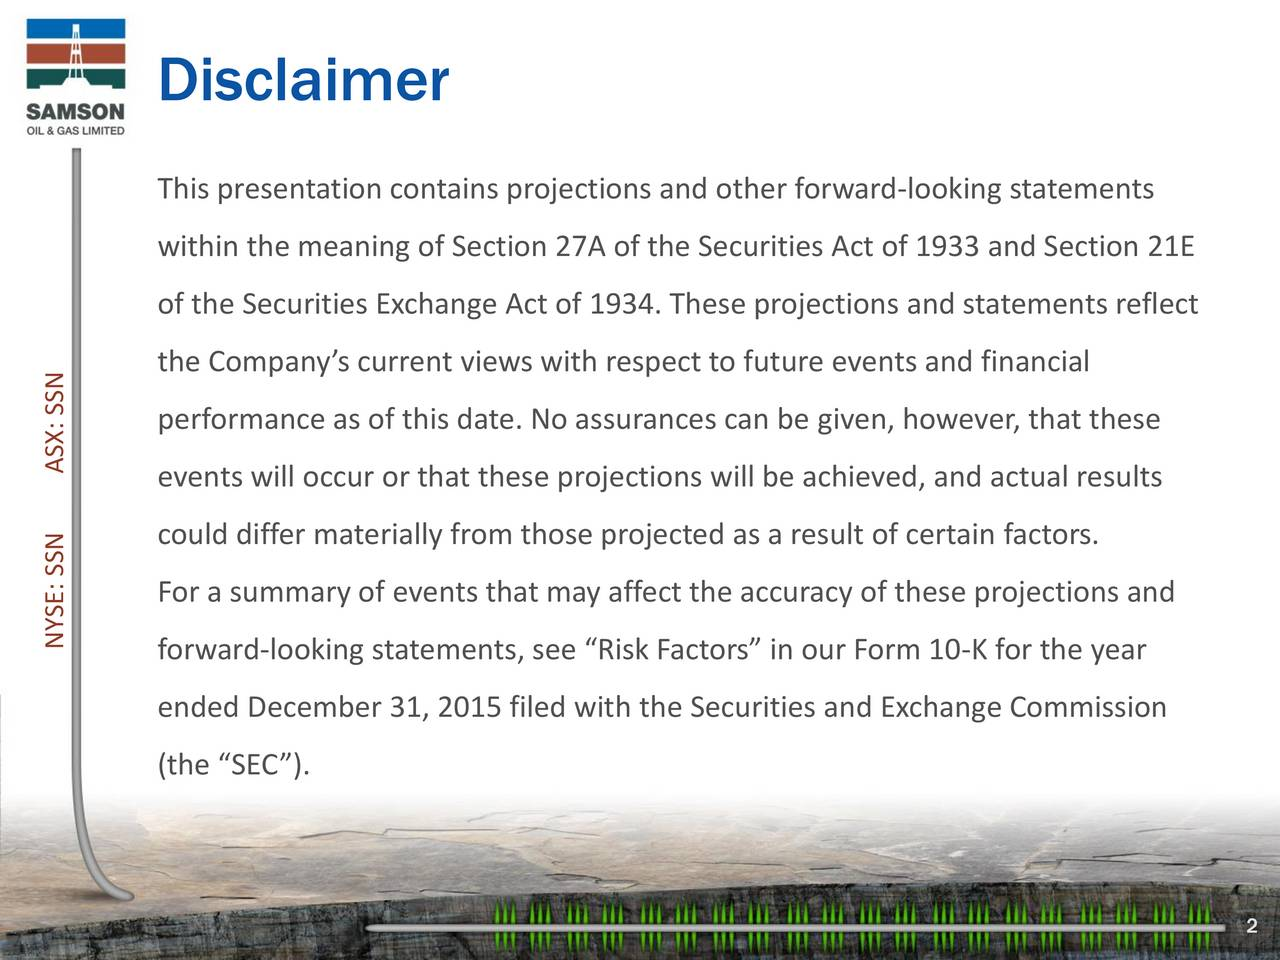 This presentation contains projections and other forward-looking statements within the meaning of Section 27A of the Securities Act of 1933 and Section 21E of the Securities Exchange Act of 1934. These projections and statements reflect the Companys current views with respect to future events and financial performance as of this date. No assurances can be given, however, that these events will occur or that these projections will be achieved, and actual results could differ materially from those projected as a result of certain factors. For a summary of events that may affect the accuracy of these projections and NYSE: Sforward-looking statements, see Risk Factors in our Form 10-K for the year ended December 31, 2015 filed with the Securities and Exchange Commission (the SEC). 2